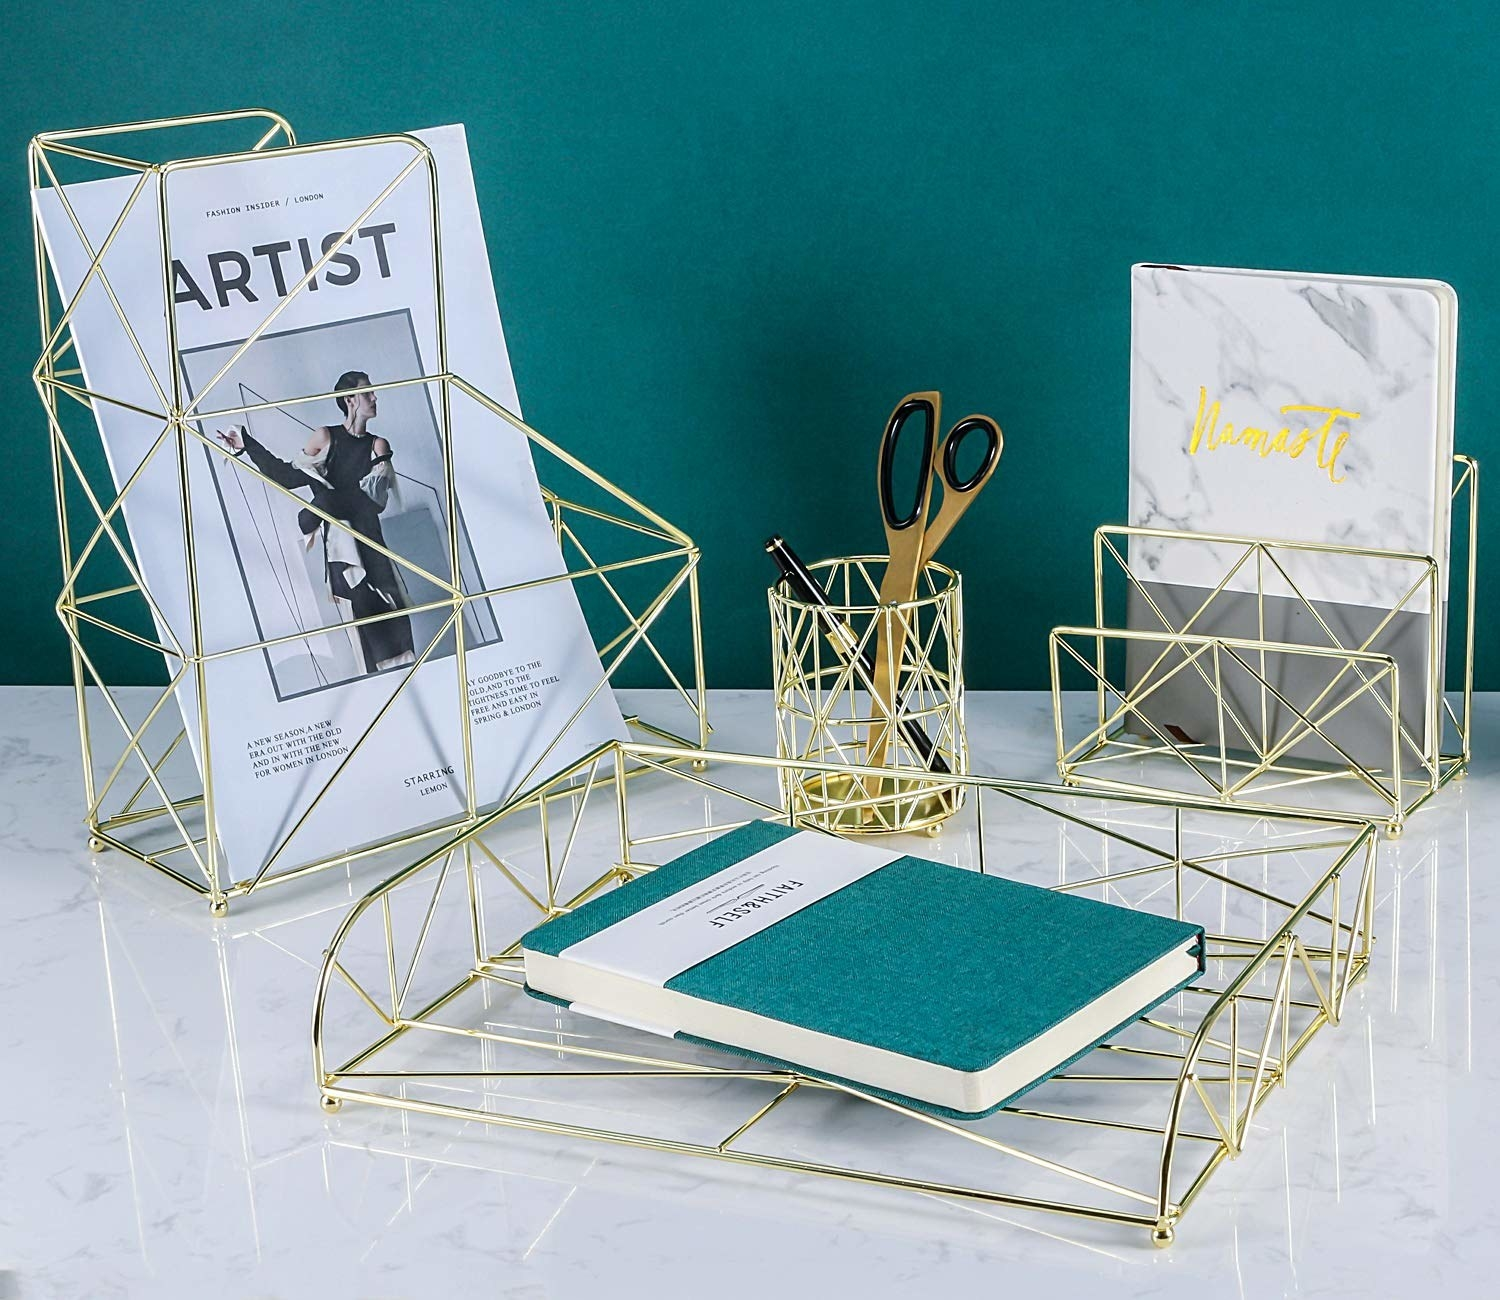 A wiry metal magazine holder, pencil holder, letter tray, and shelf on a desk